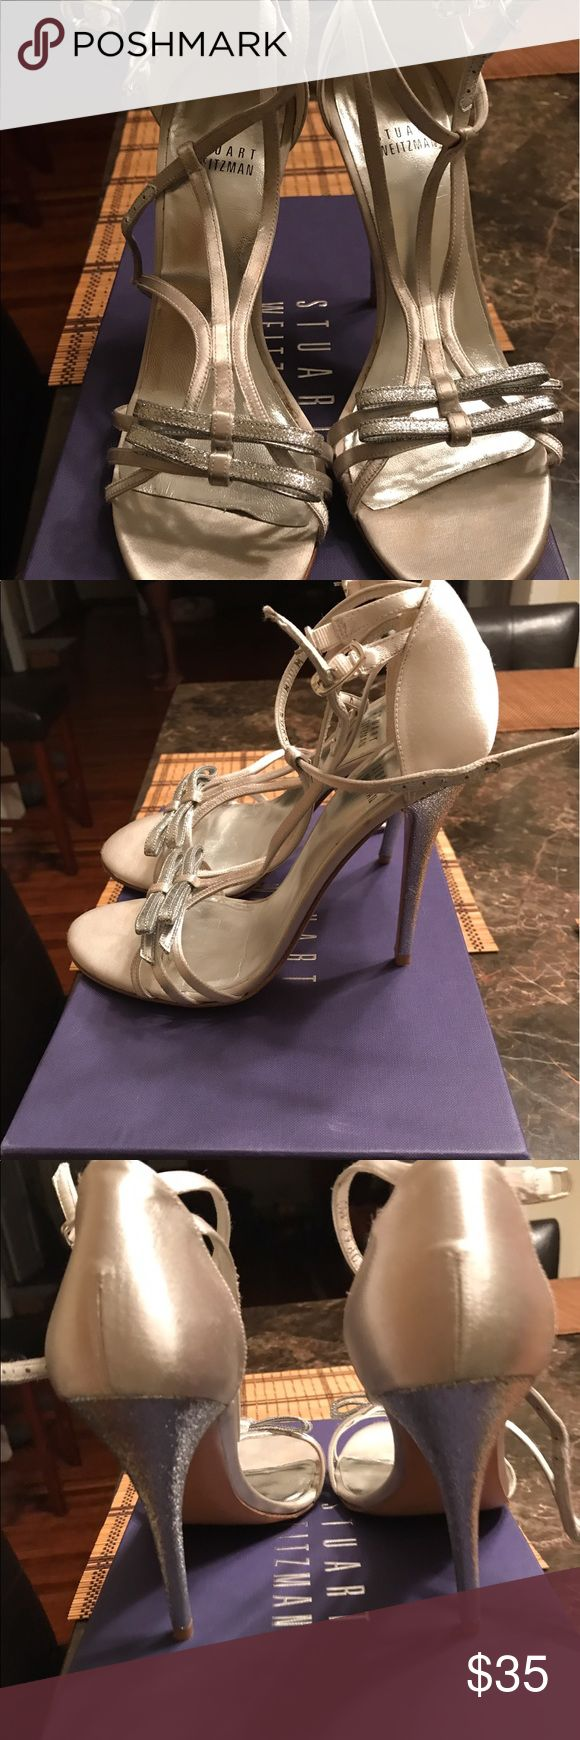 Silver evening shoes with bow on front Silver shoes with bow on front Stuart Weitzman Shoes Heels